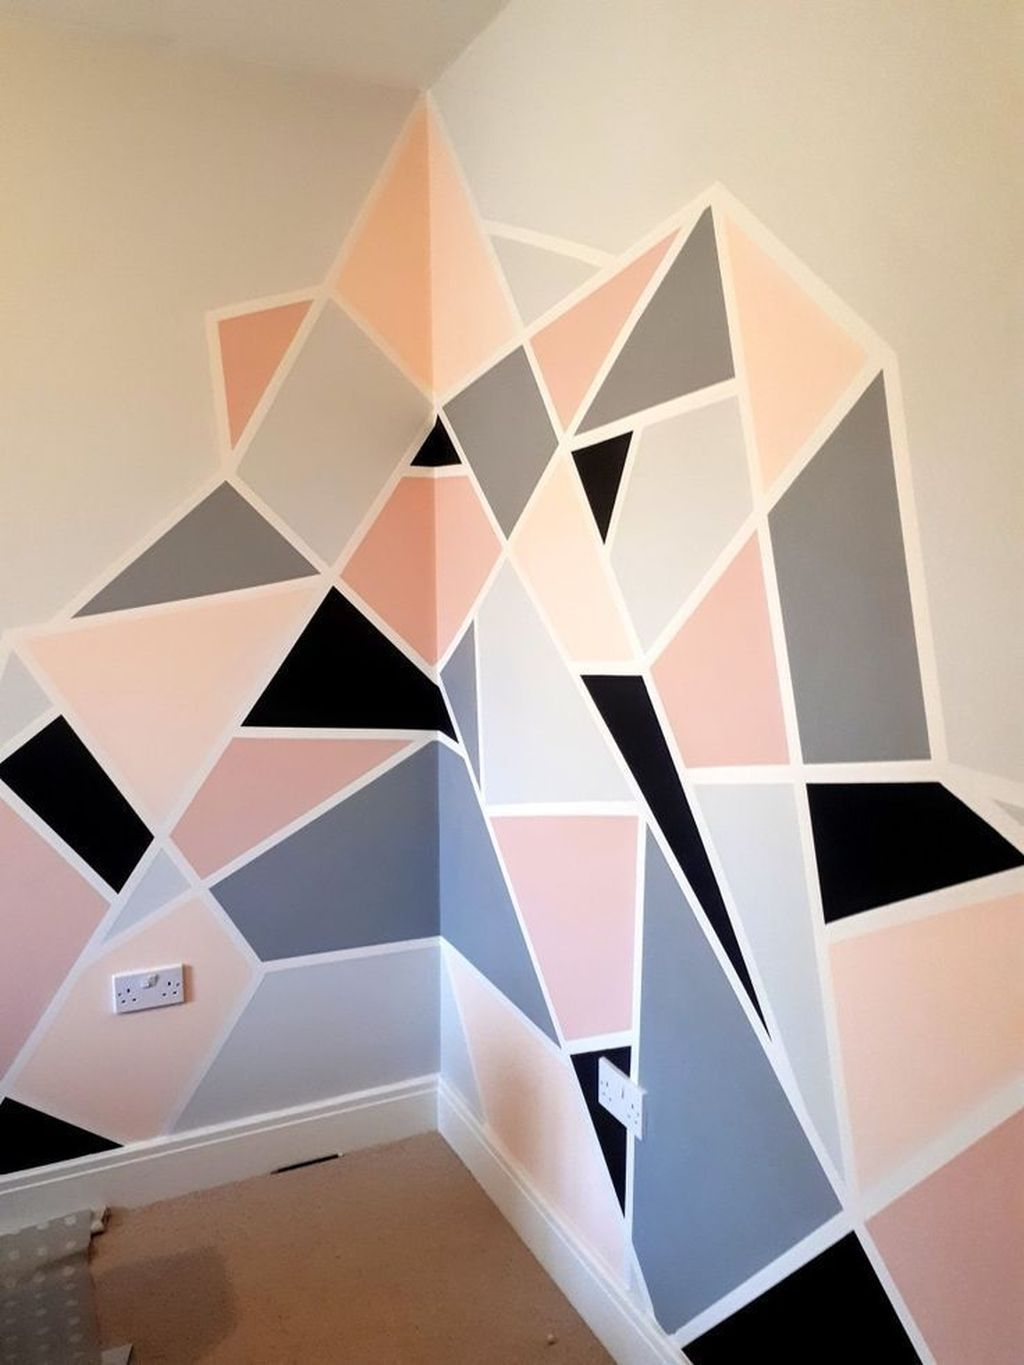 Desember 2029 Geometric Wall Decor Painting In 2020 Bedroom Wall Designs Diy Geometric Decor Diy Wall Painting